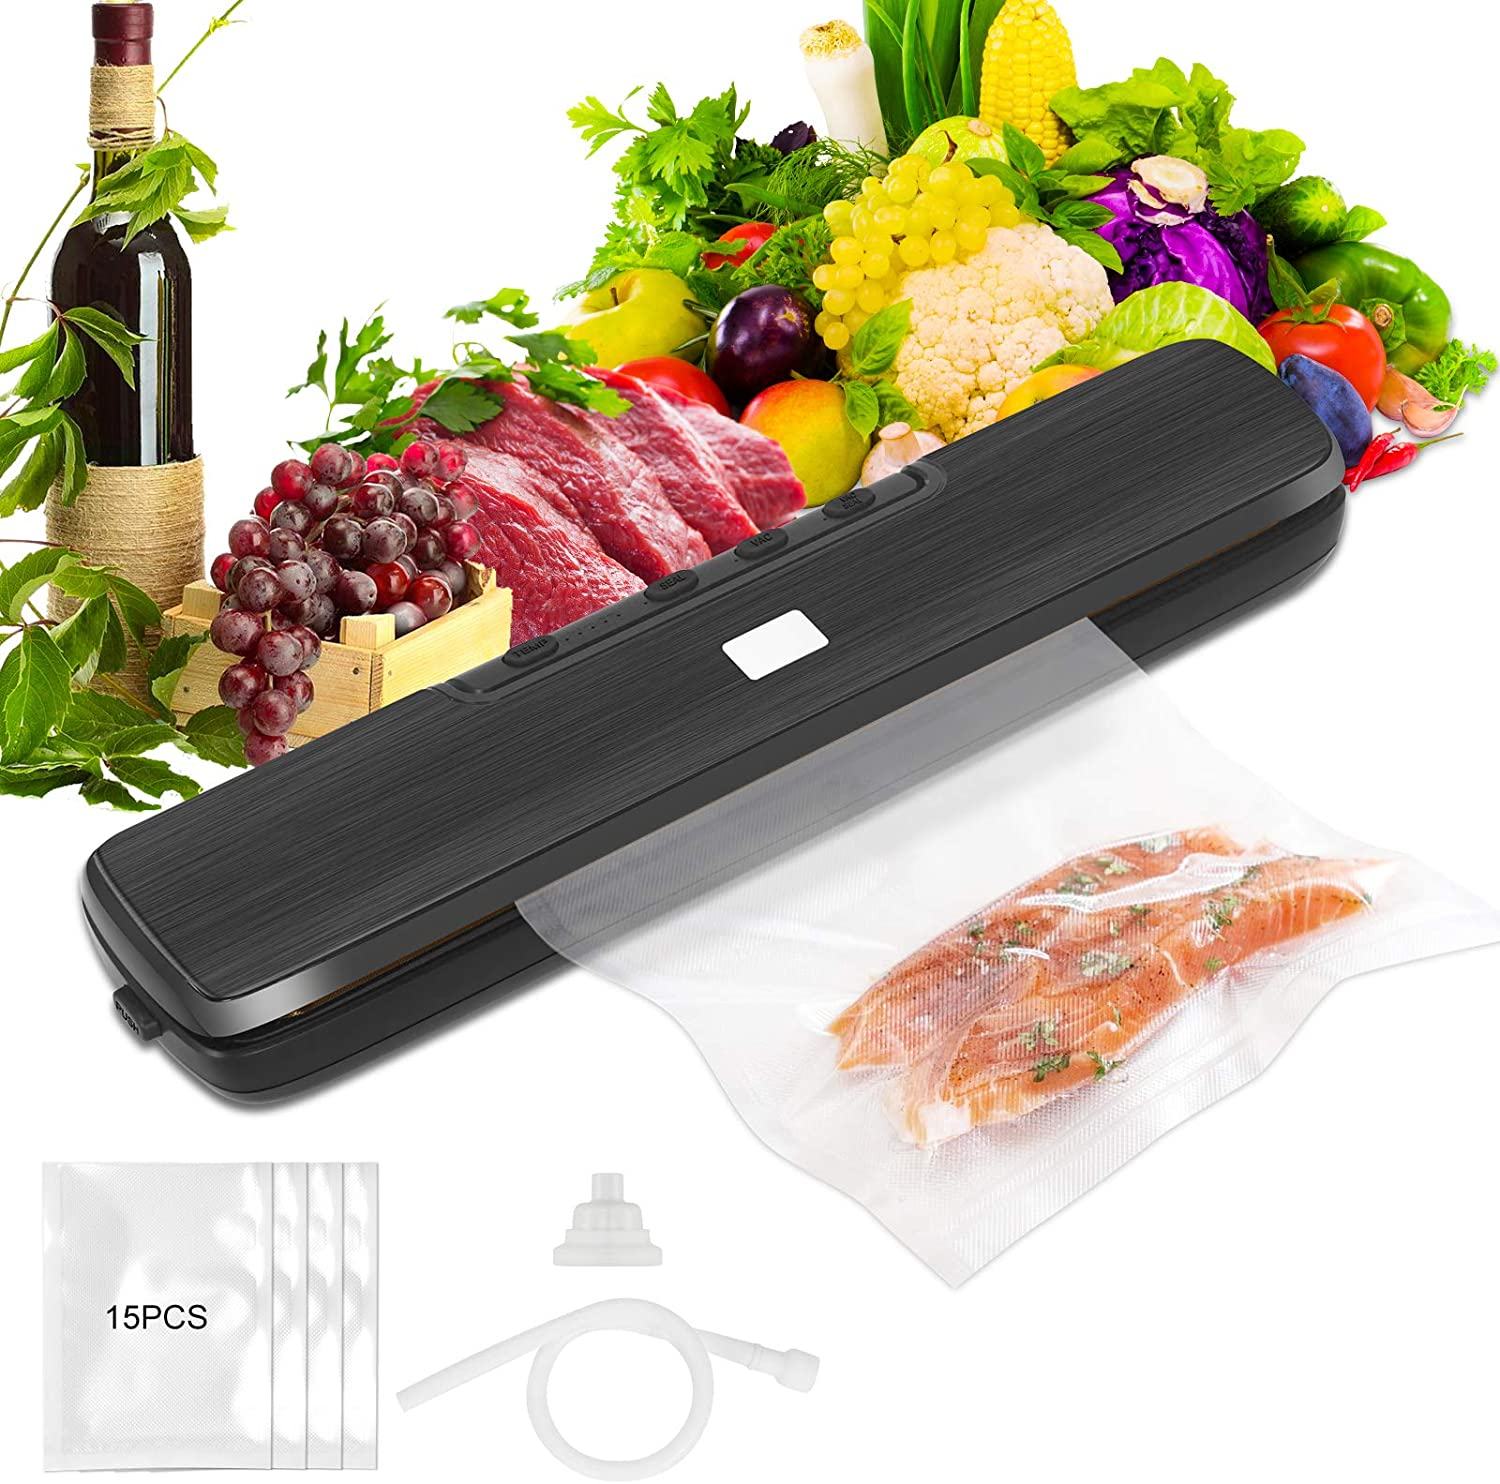 Vacuum Sealer Machine, Automatic/Manual Food Vacuum Air Sealing System, Dry & Moist Food Modes, Waterproof Vacuum Tube/15 pcs Vacuum Bags